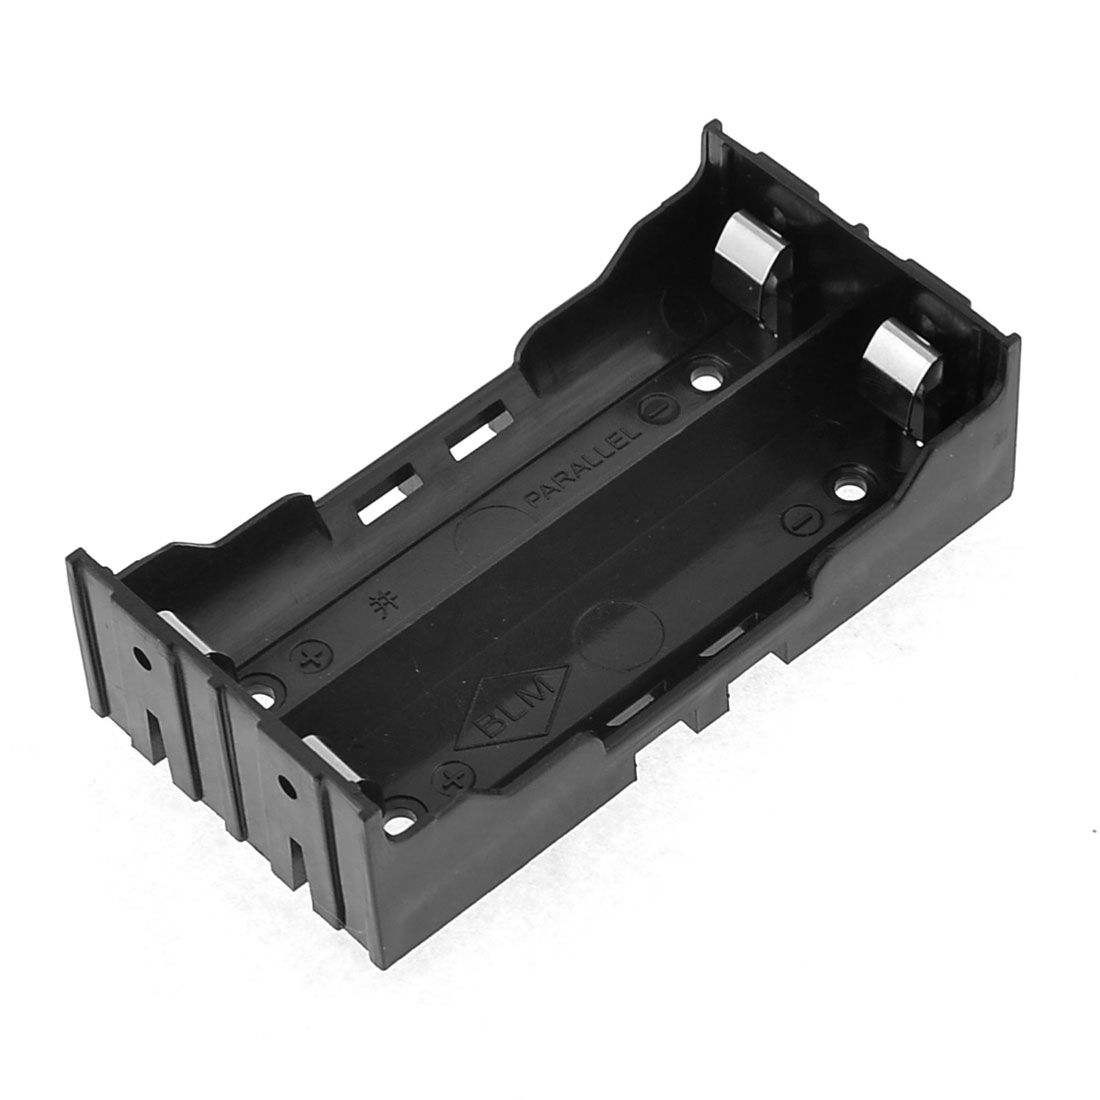 Black Battery Holder 4 Pins for 2x18650 Rechargeable Li-ion Batteries